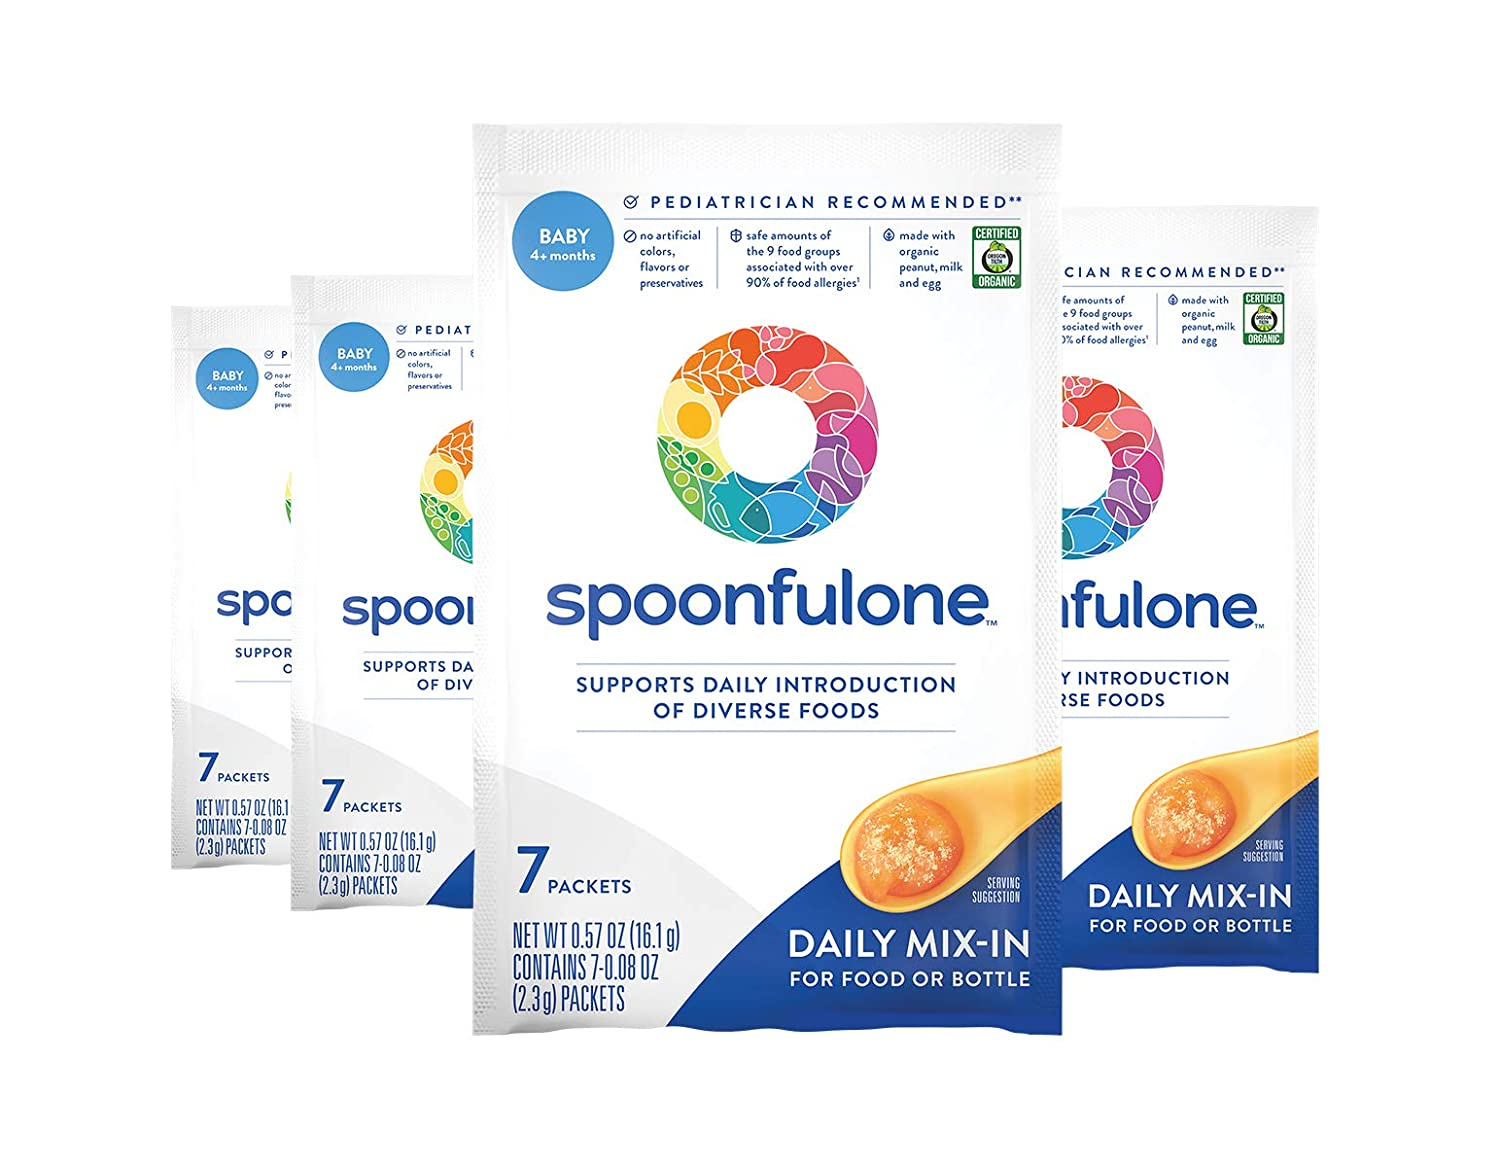 SpoonfulOne Early Allergen Introduction Mix-Ins | Smart Feeding for an Infant or Baby 4+ Months | Certified Organic (28 Packets)